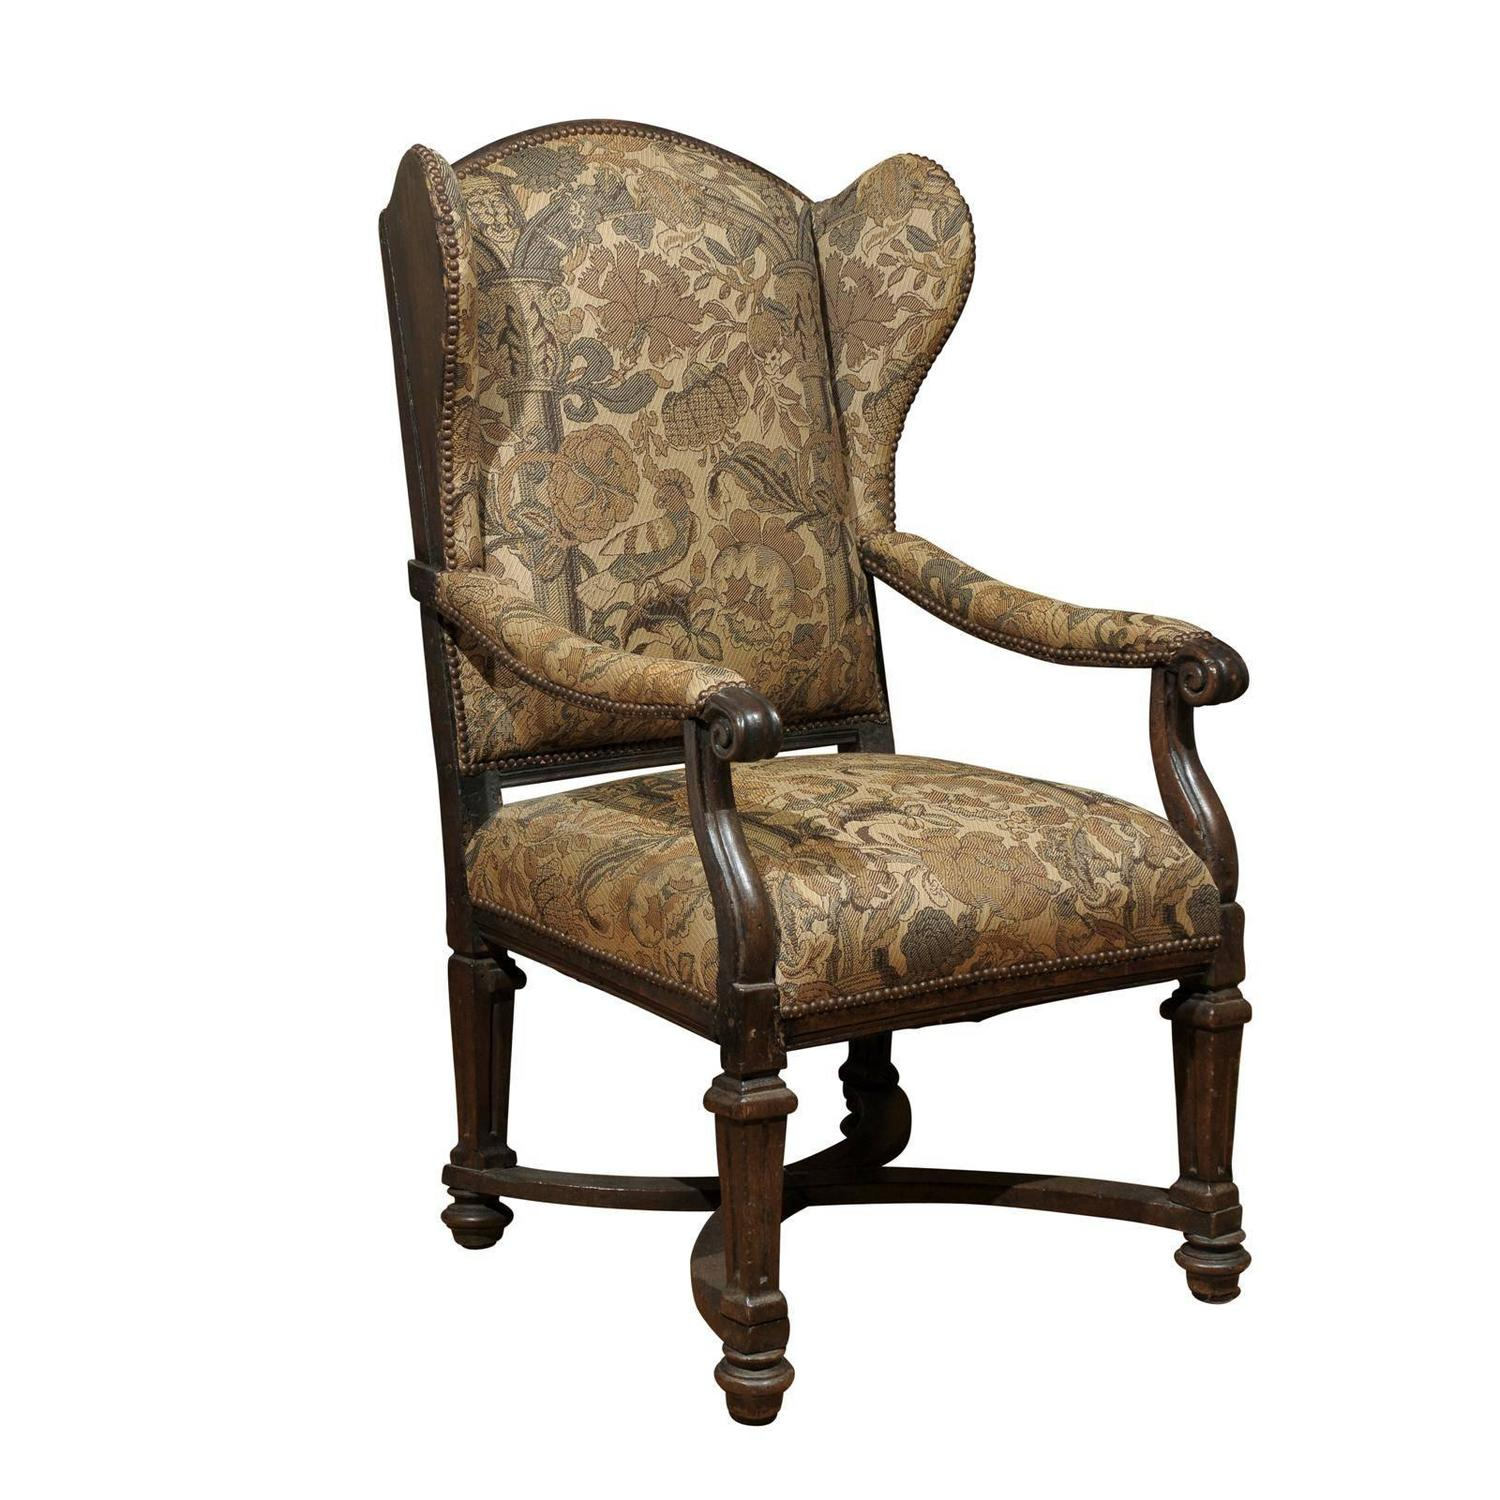 Used Wingback Chairs 18th Century English Upholstered Wingback Chair For Sale